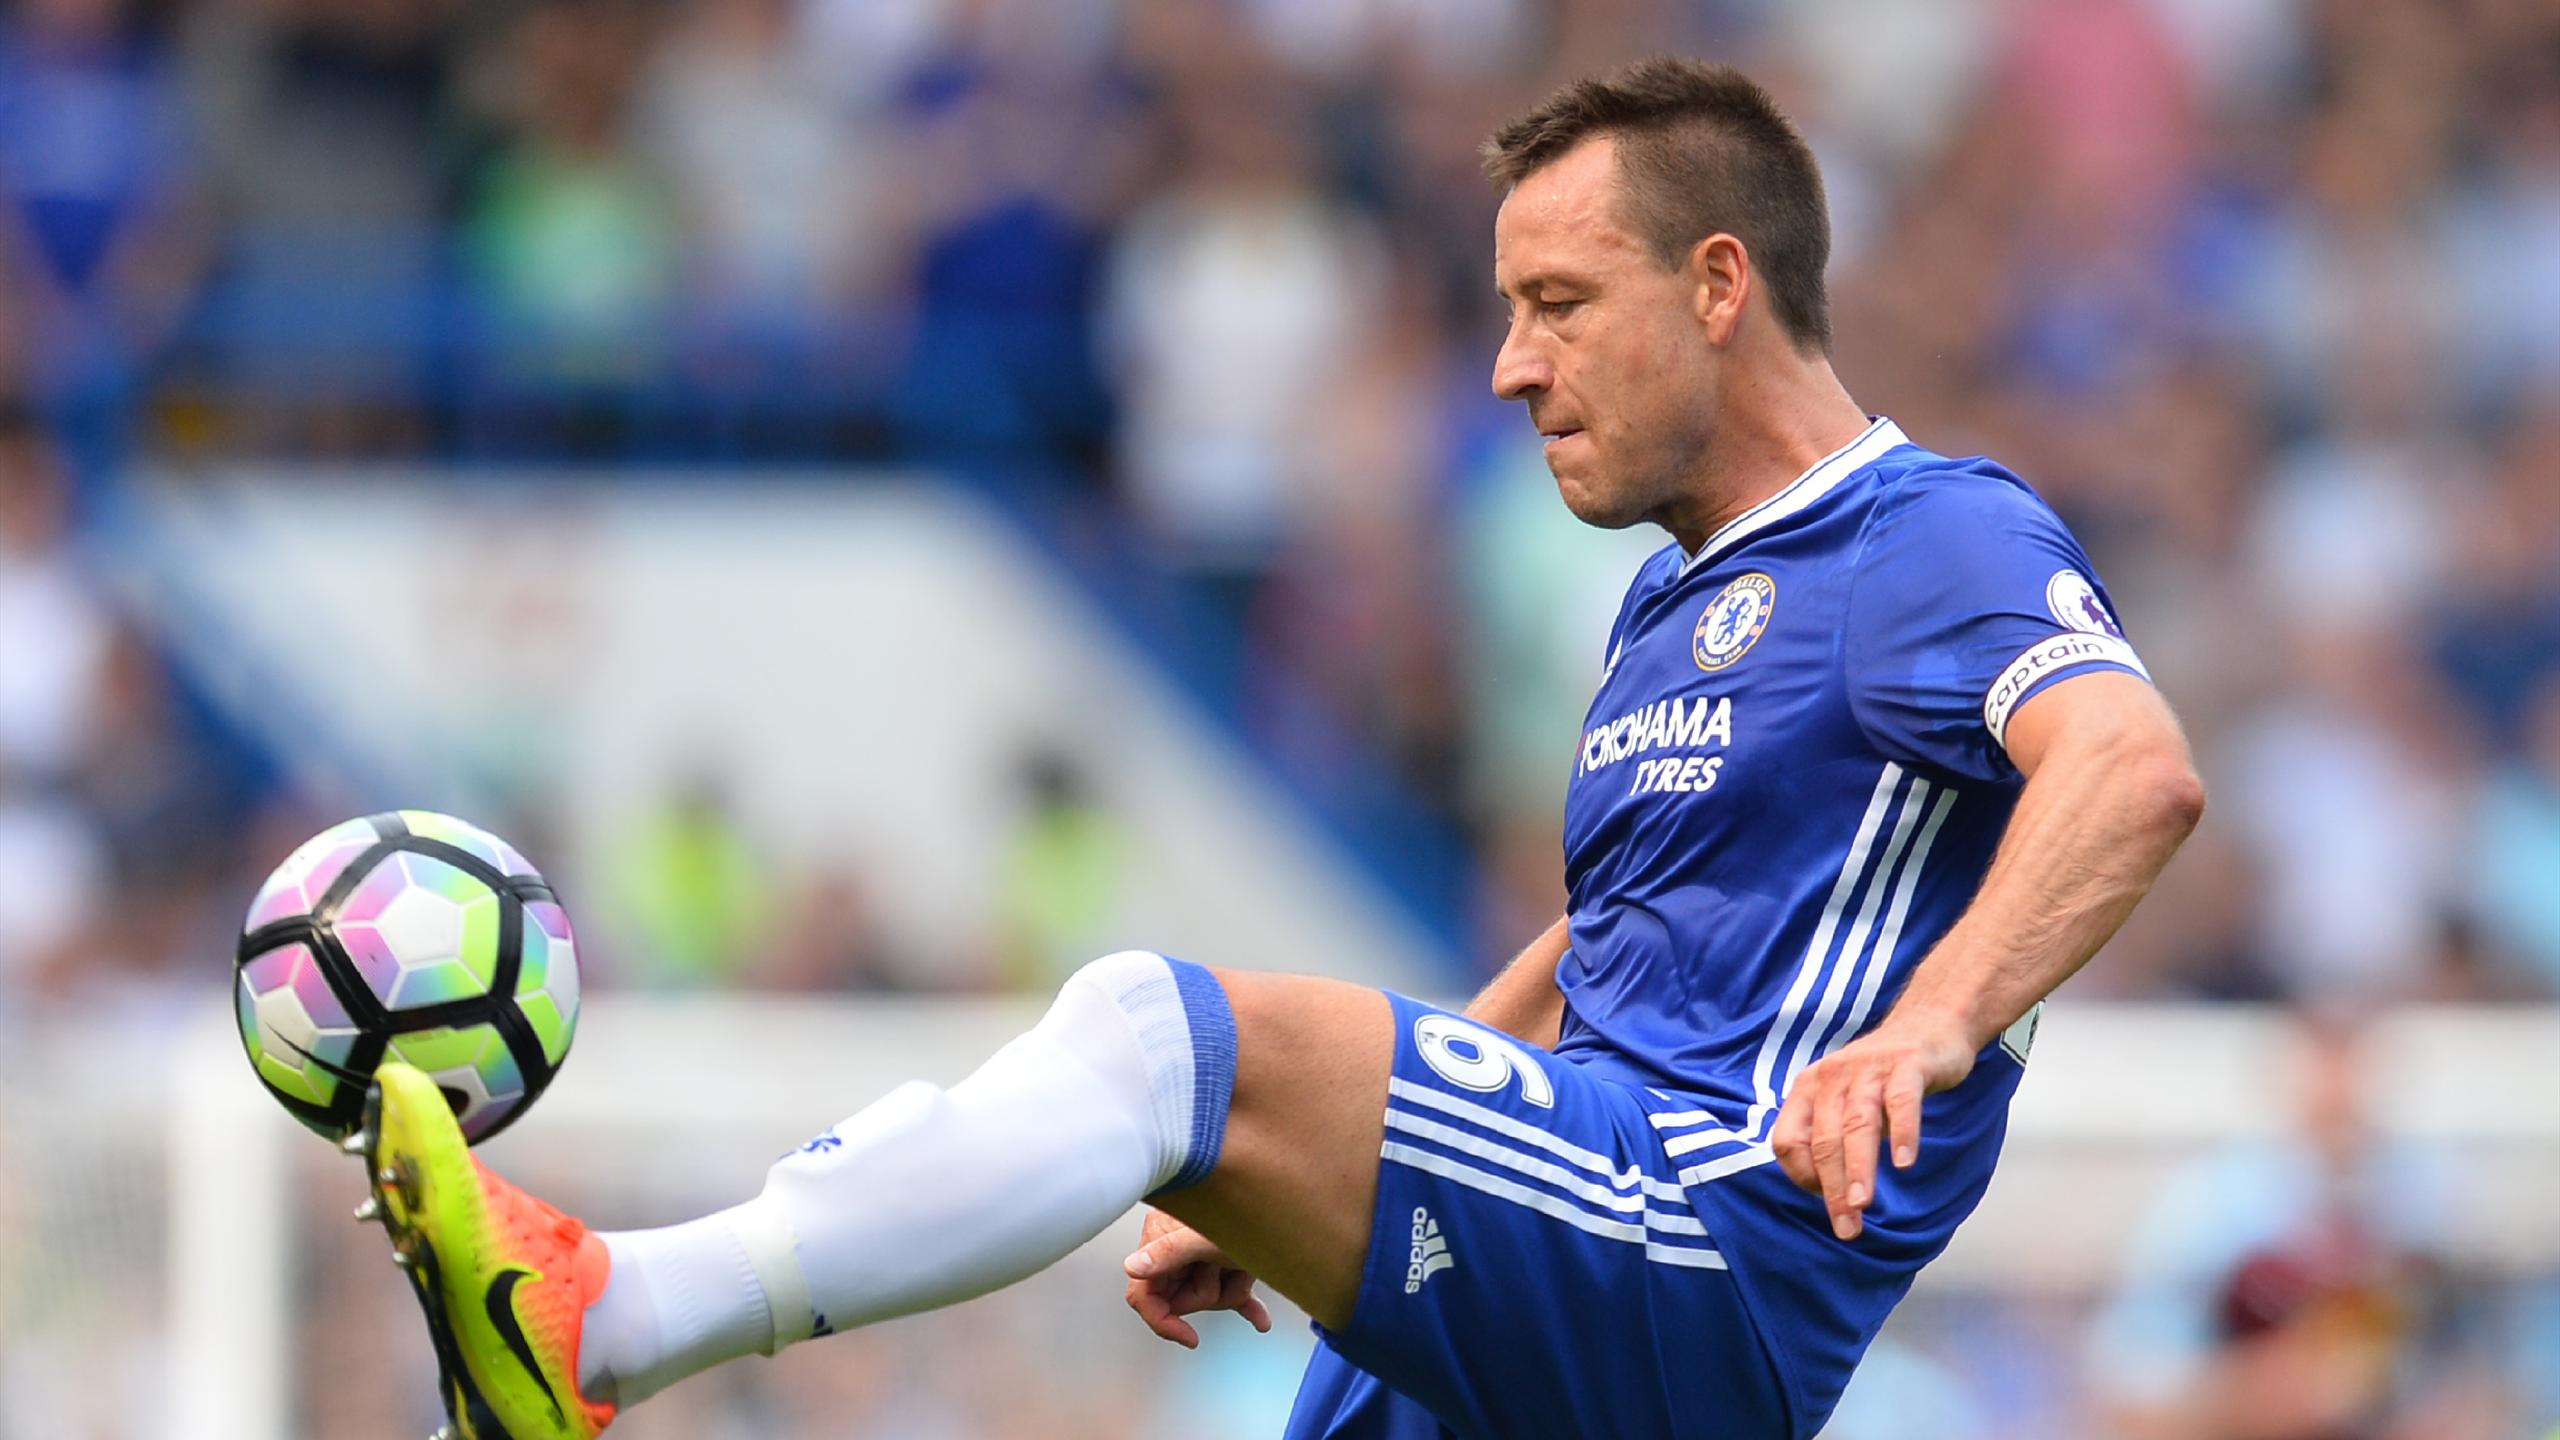 Chelsea's English defender John Terry controls the ball during the English Premier League football match between Chelsea and Burnley